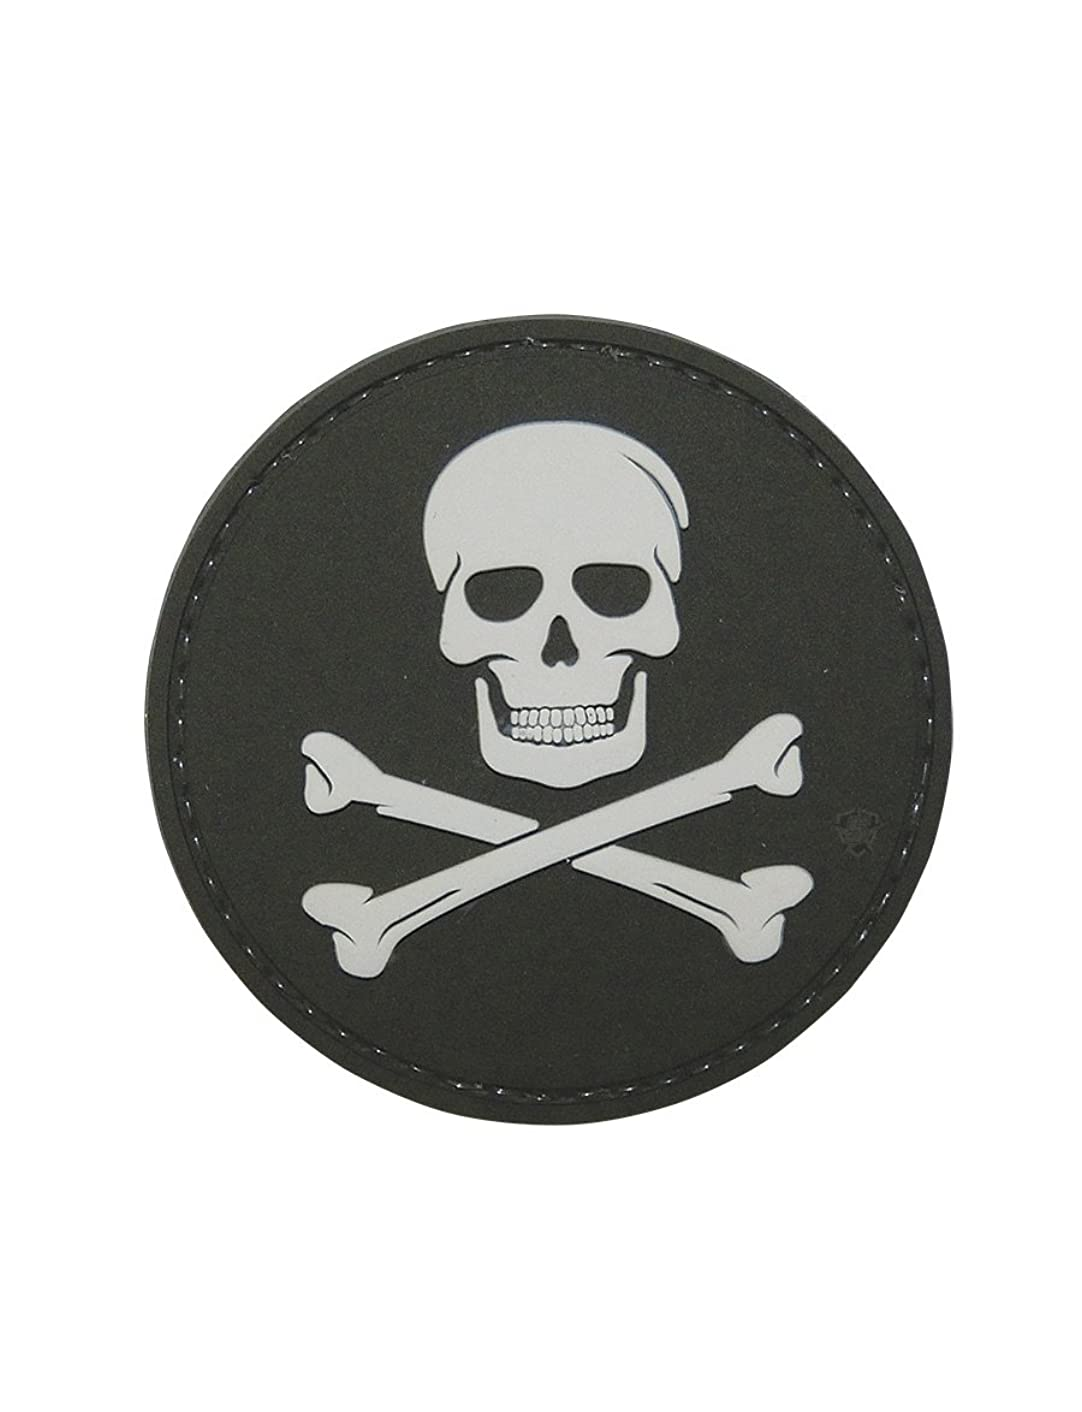 5ive Star Gear Jolly Roger Morale Patch, Multi-Color, One Size